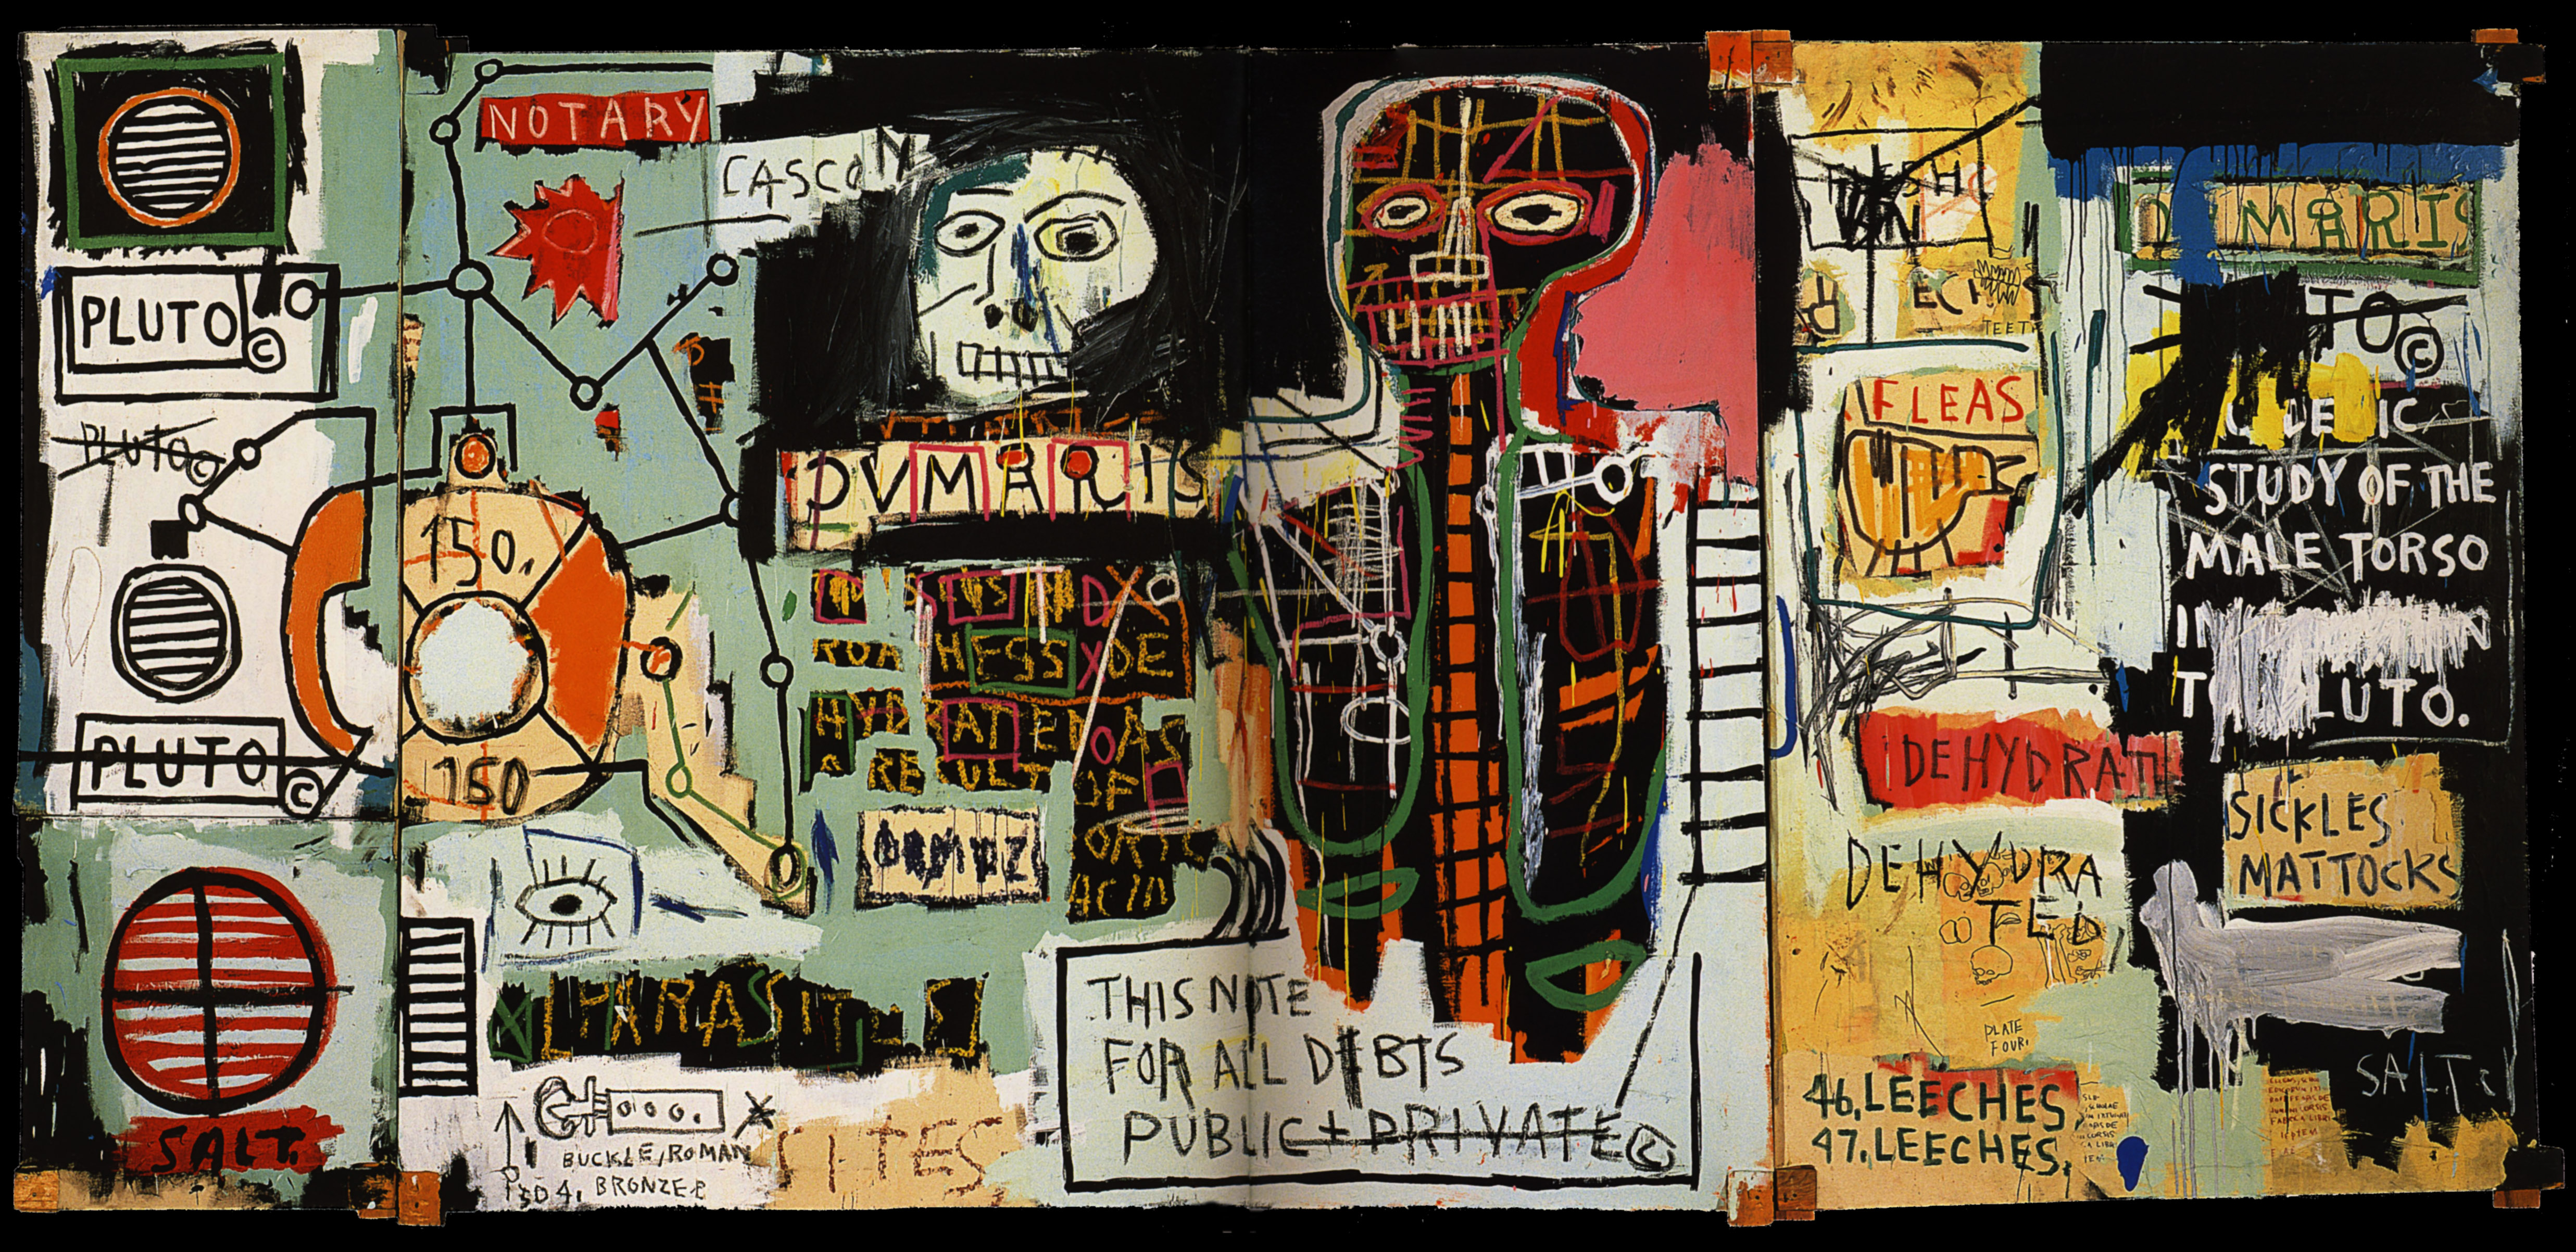 https://uploads6.wikiart.org/images/jean-michel-basquiat/notary.jpg